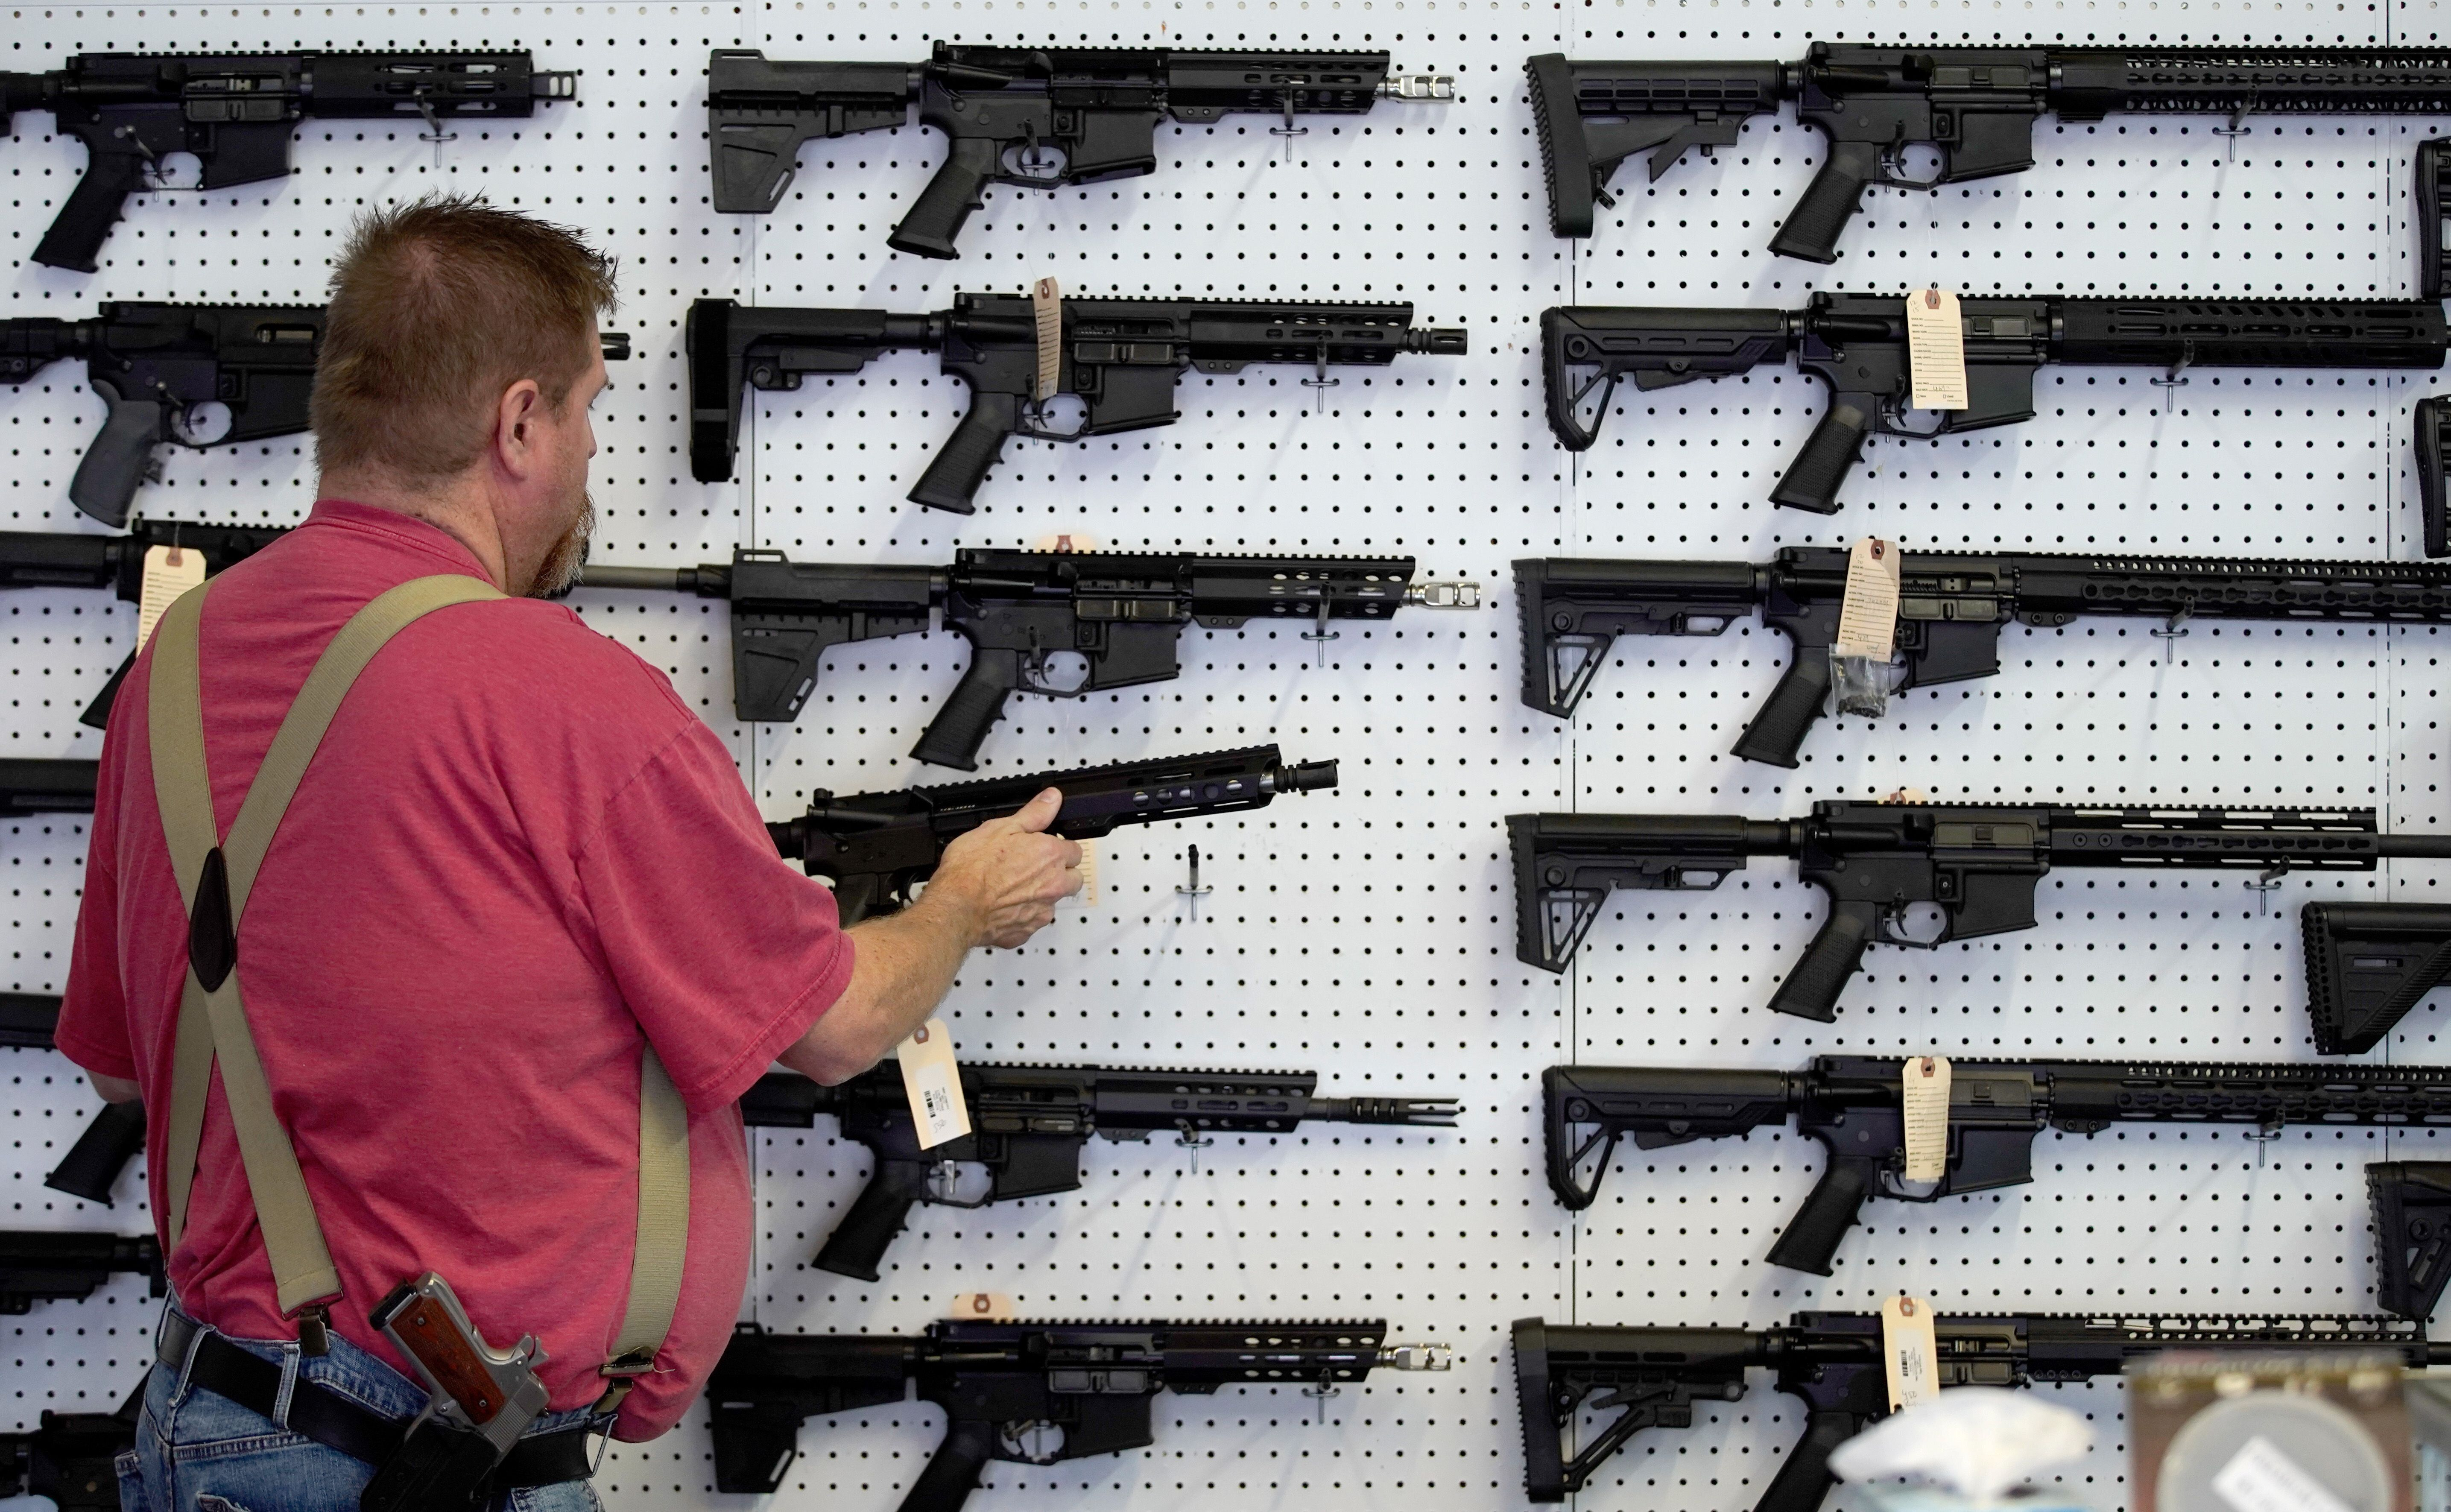 AR-15 guns are designed to kill many people in a short amount of time.